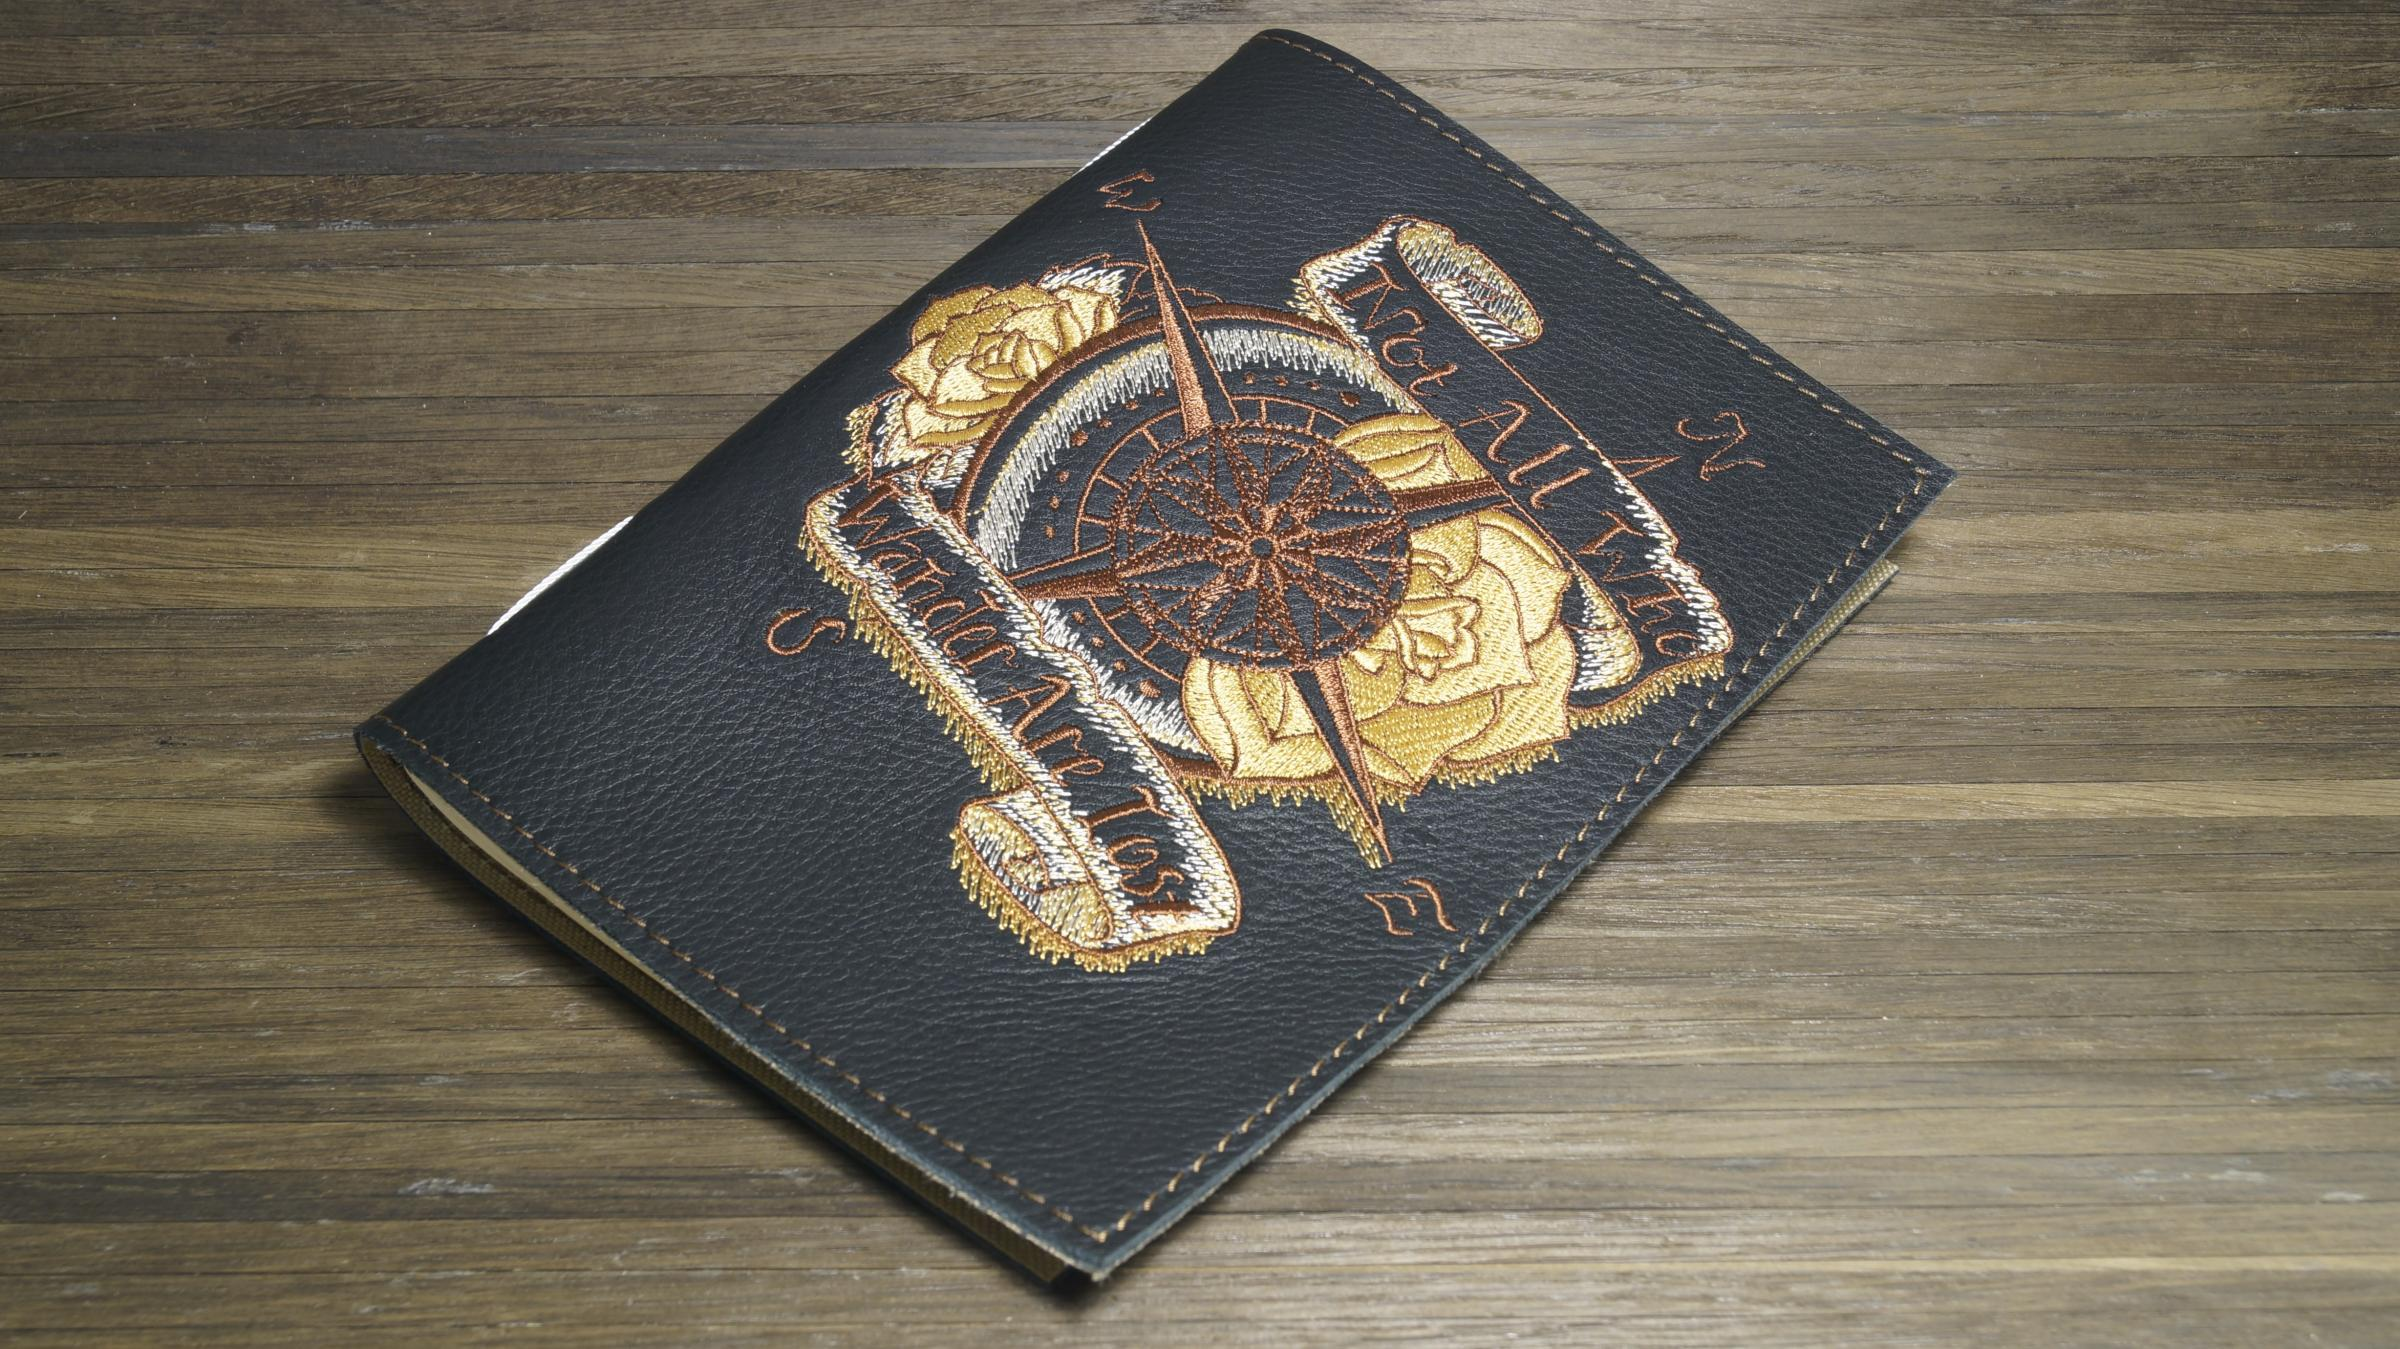 Embroidered leather cover with Wind rose design